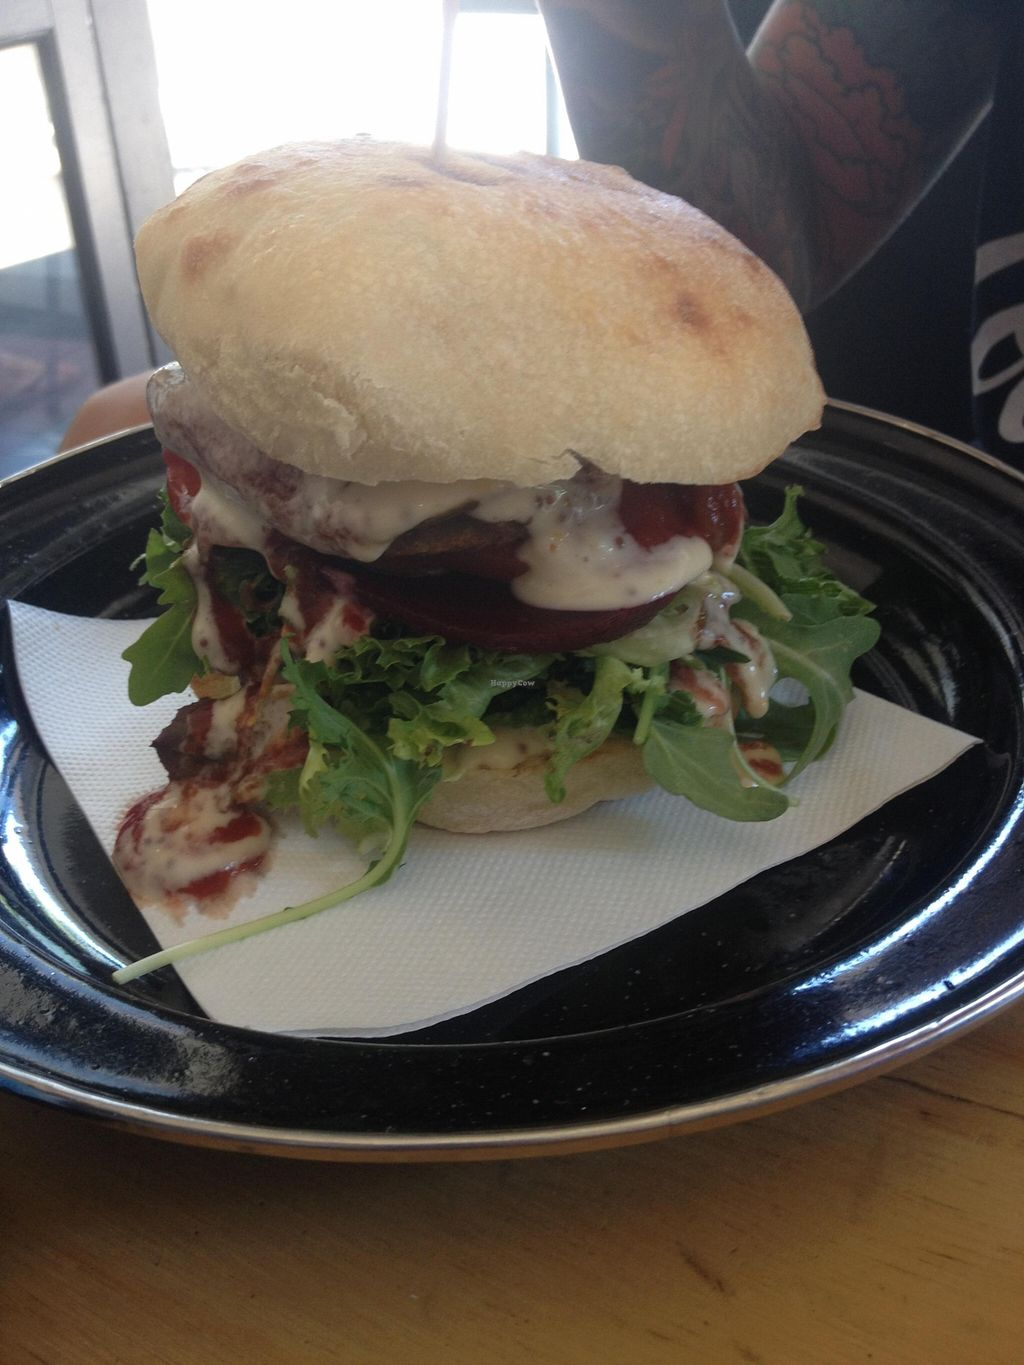 """Photo of Suzy Spoon's Vegetarian Butcher  by <a href=""""/members/profile/vegan_ryan"""">vegan_ryan</a> <br/>Schnitzel burger <br/> January 17, 2016  - <a href='/contact/abuse/image/34575/132707'>Report</a>"""